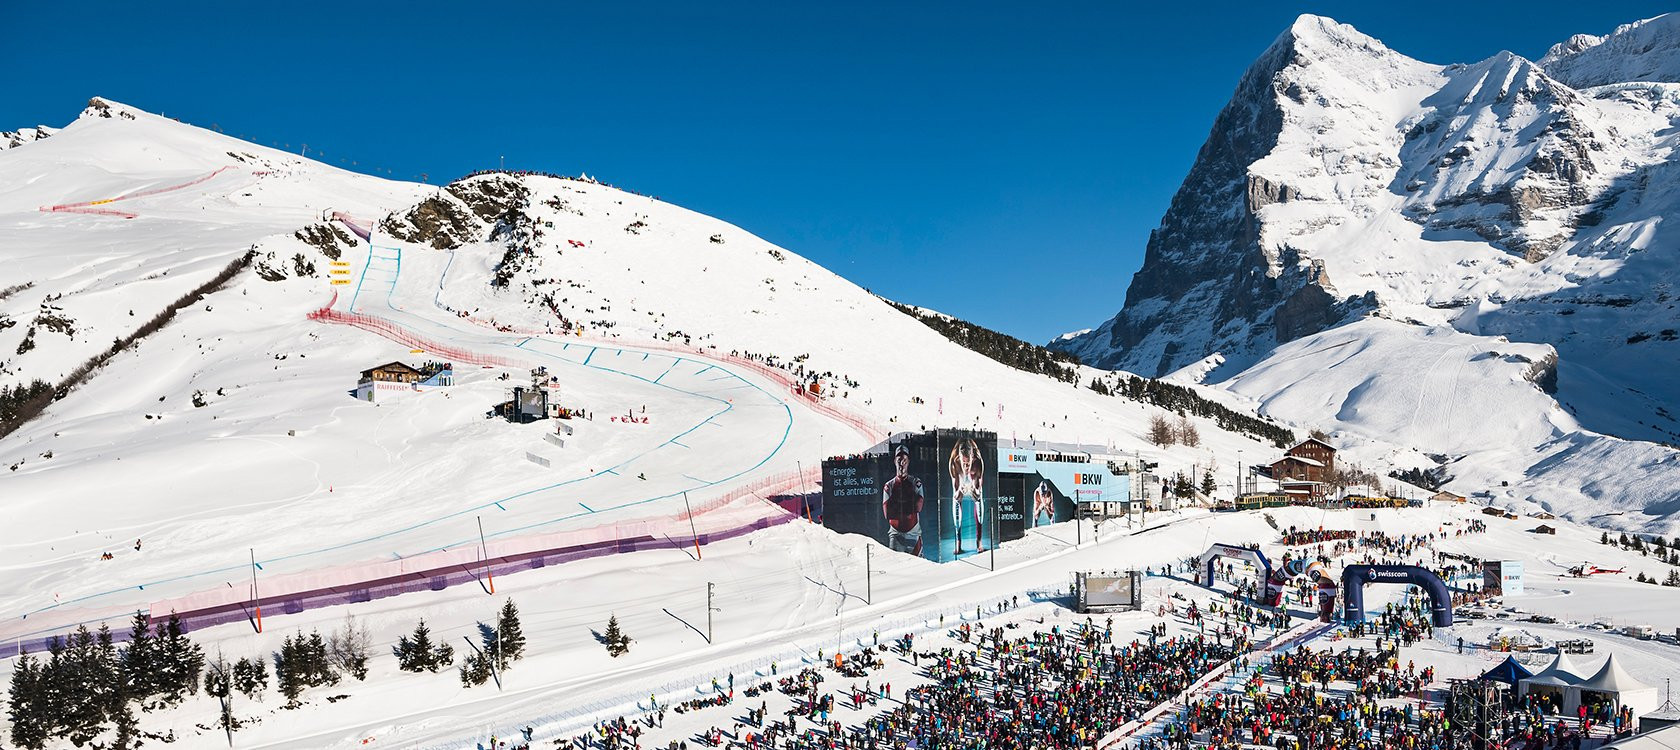 Organisers of the Lauberhorn race in Wengen are currently in a dispute with Swiss Ski ©Swiss Ski